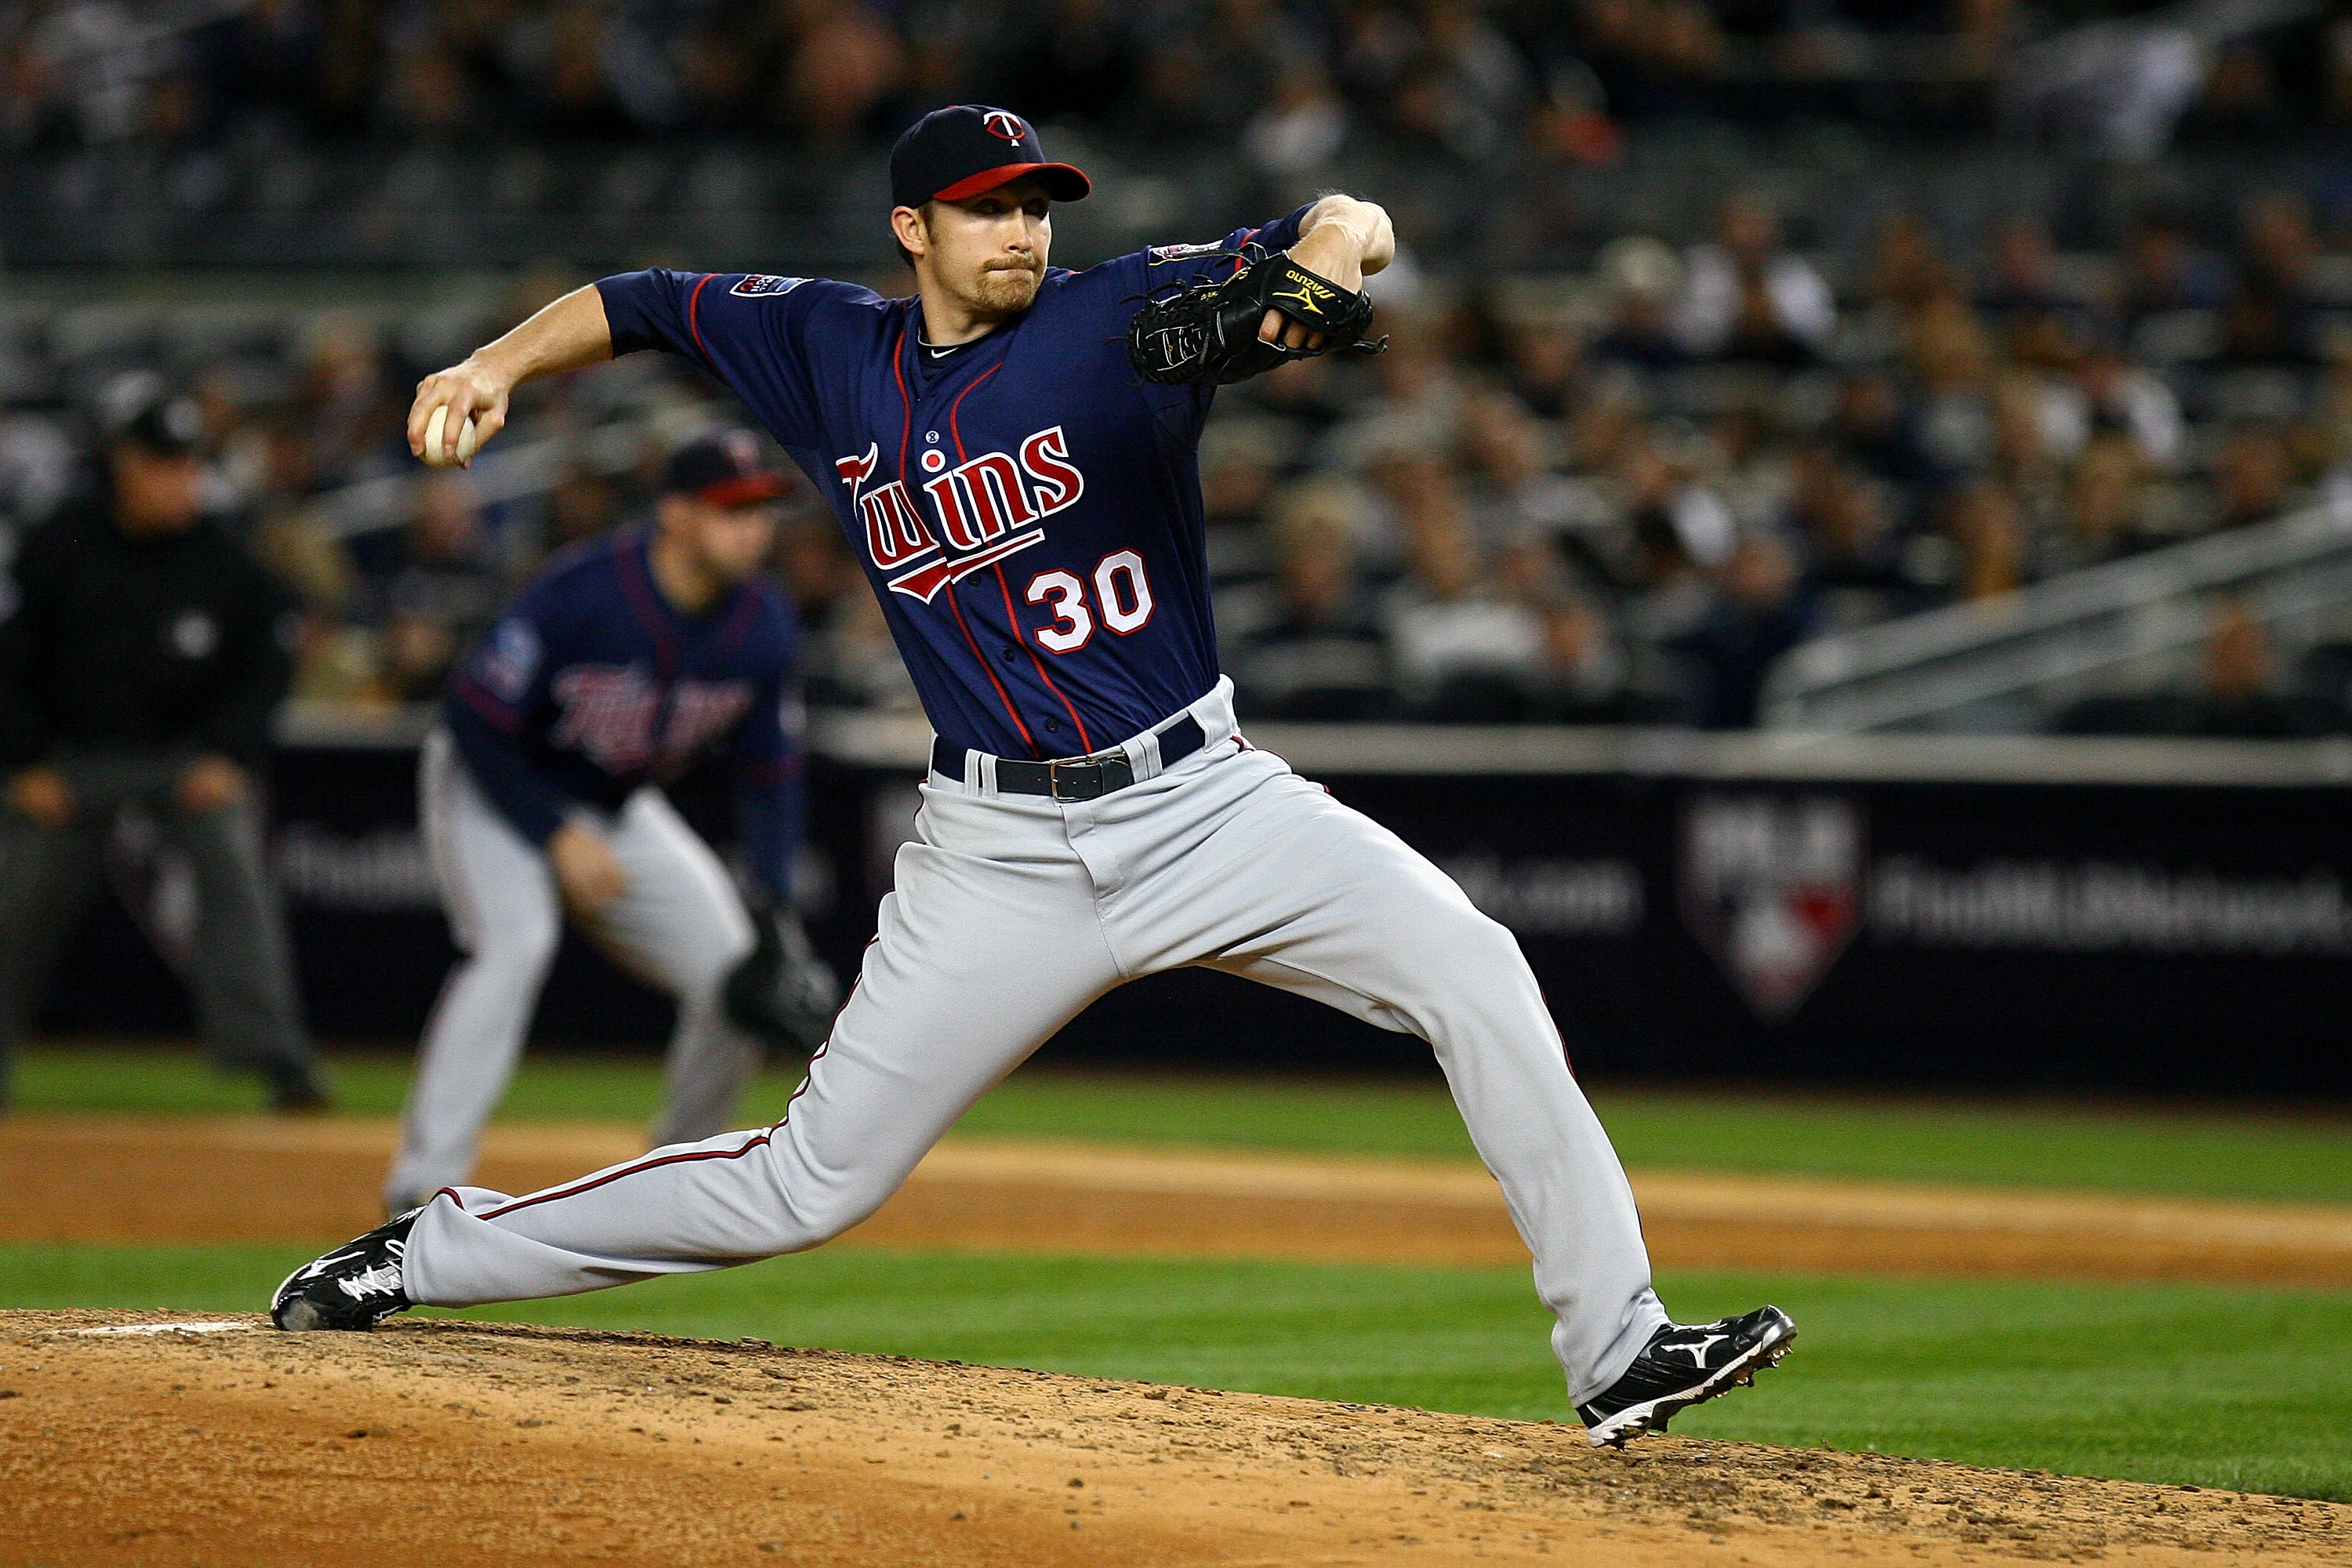 NEW YORK - OCTOBER 09:  Scott Baker #30 of the Minnesota Twins throws a pitch against the New York Yankees during Game Three of the ALDS part of the 2010 MLB Playoffs at Yankee Stadium on October 9, 2010 in the Bronx borough of New York City.  (Photo by A